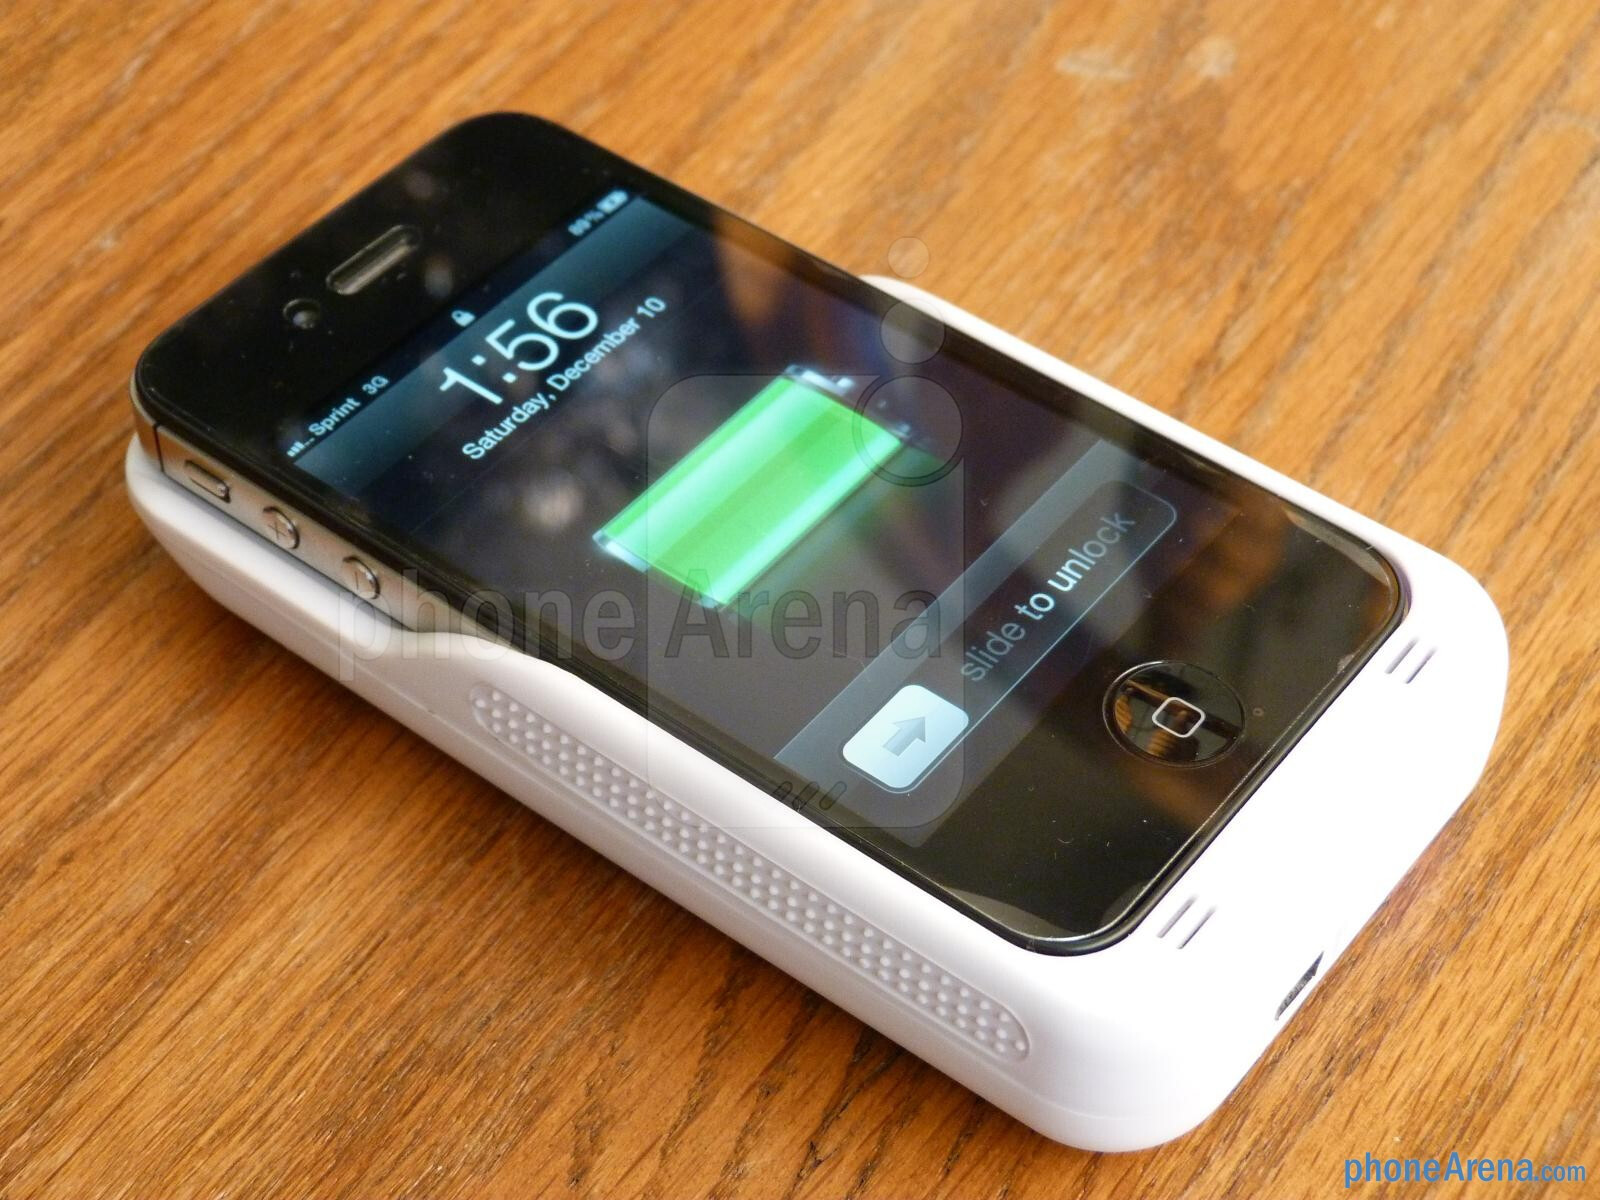 iSolarPlus Solar Powered Charger Case hands-on : PhoneArena reviews